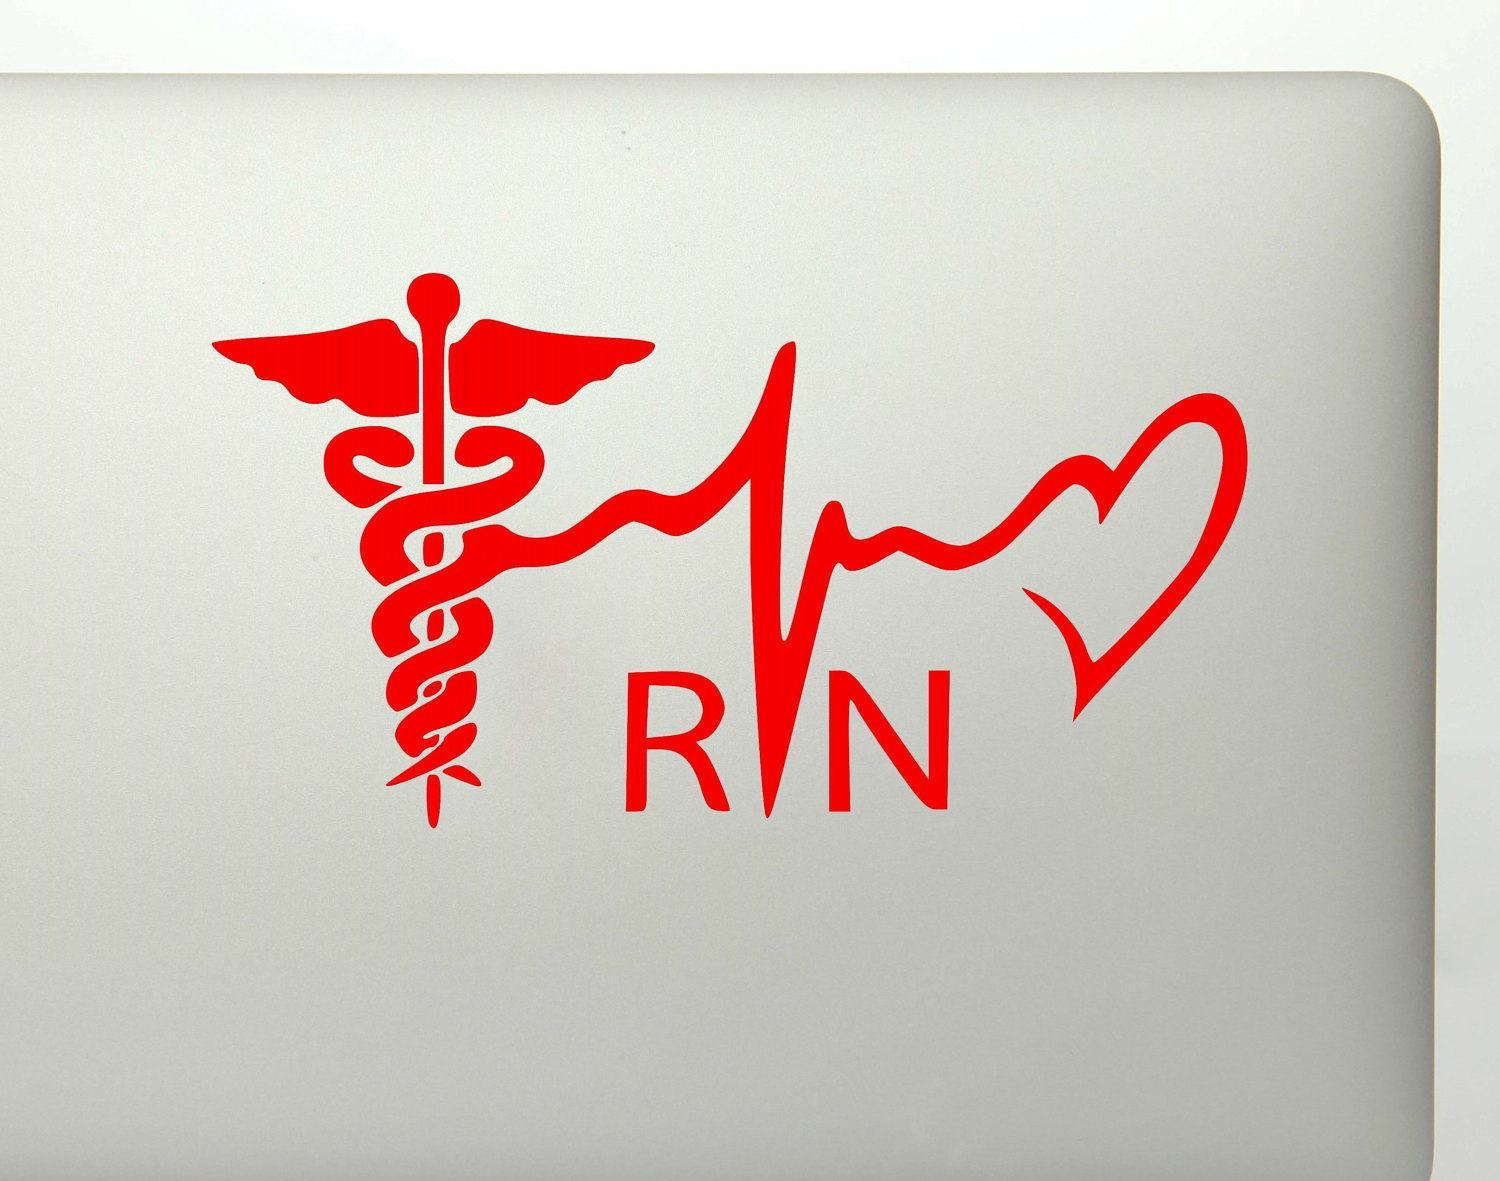 RN Nurse Medical Symbol Heartbeat Vinyl Decal Sticker.